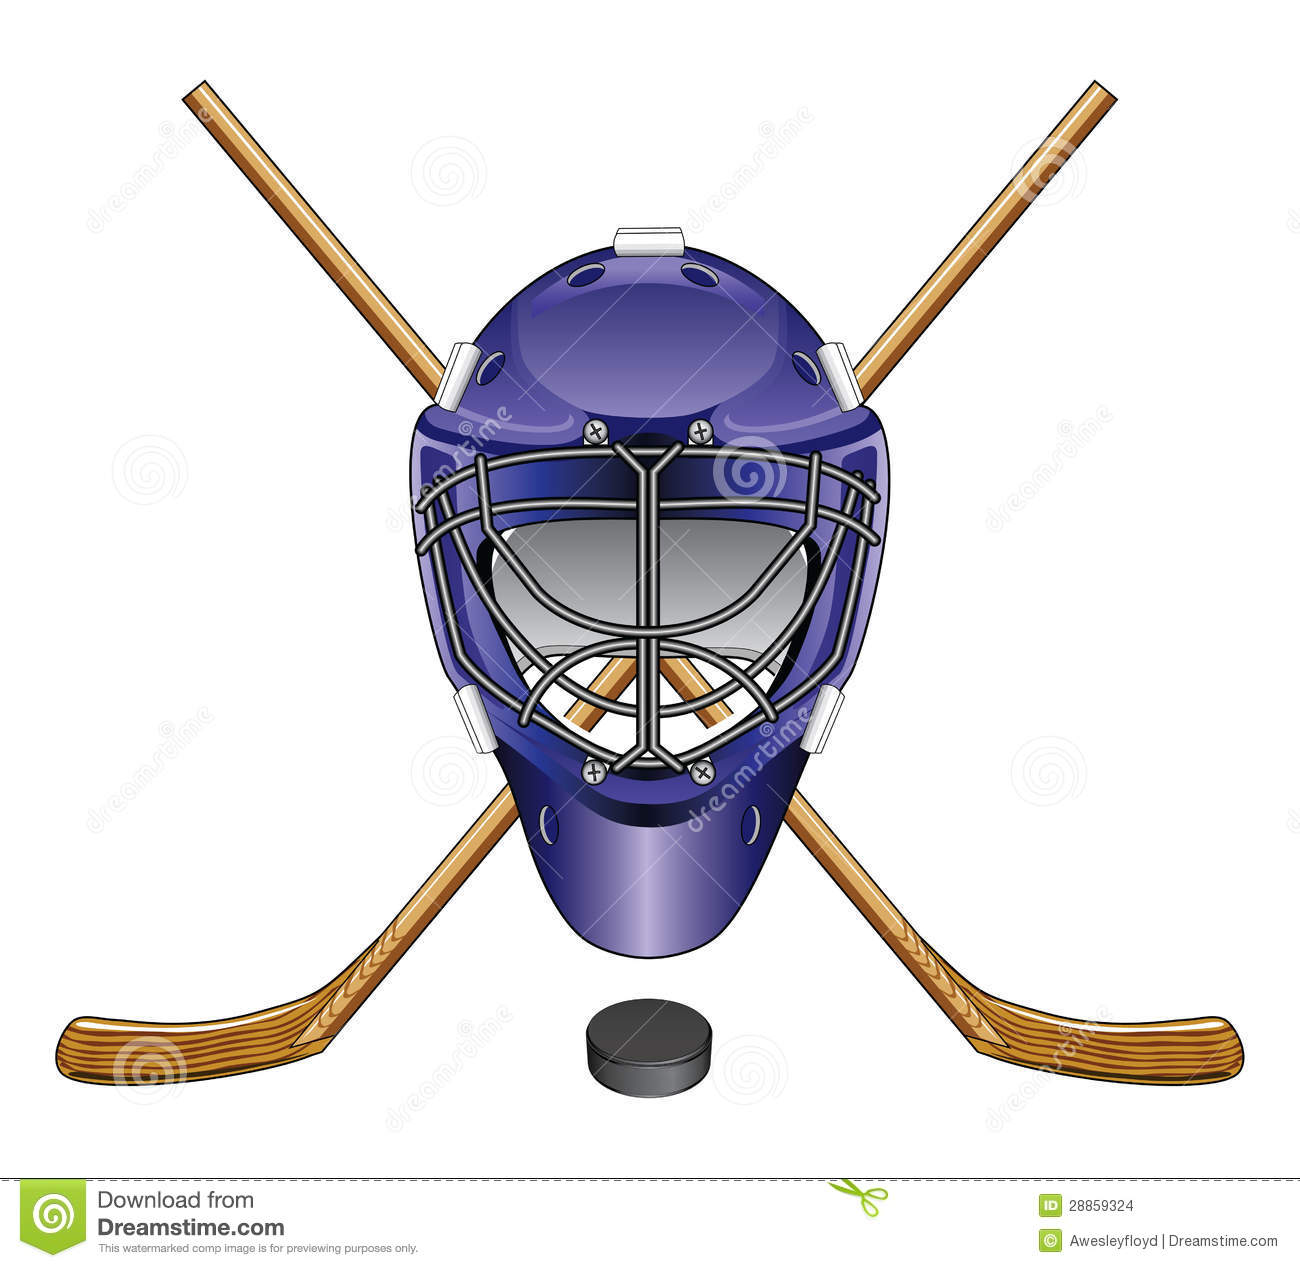 Illustration of an ice hockey goalie mask, sticks and puck. Great for ...